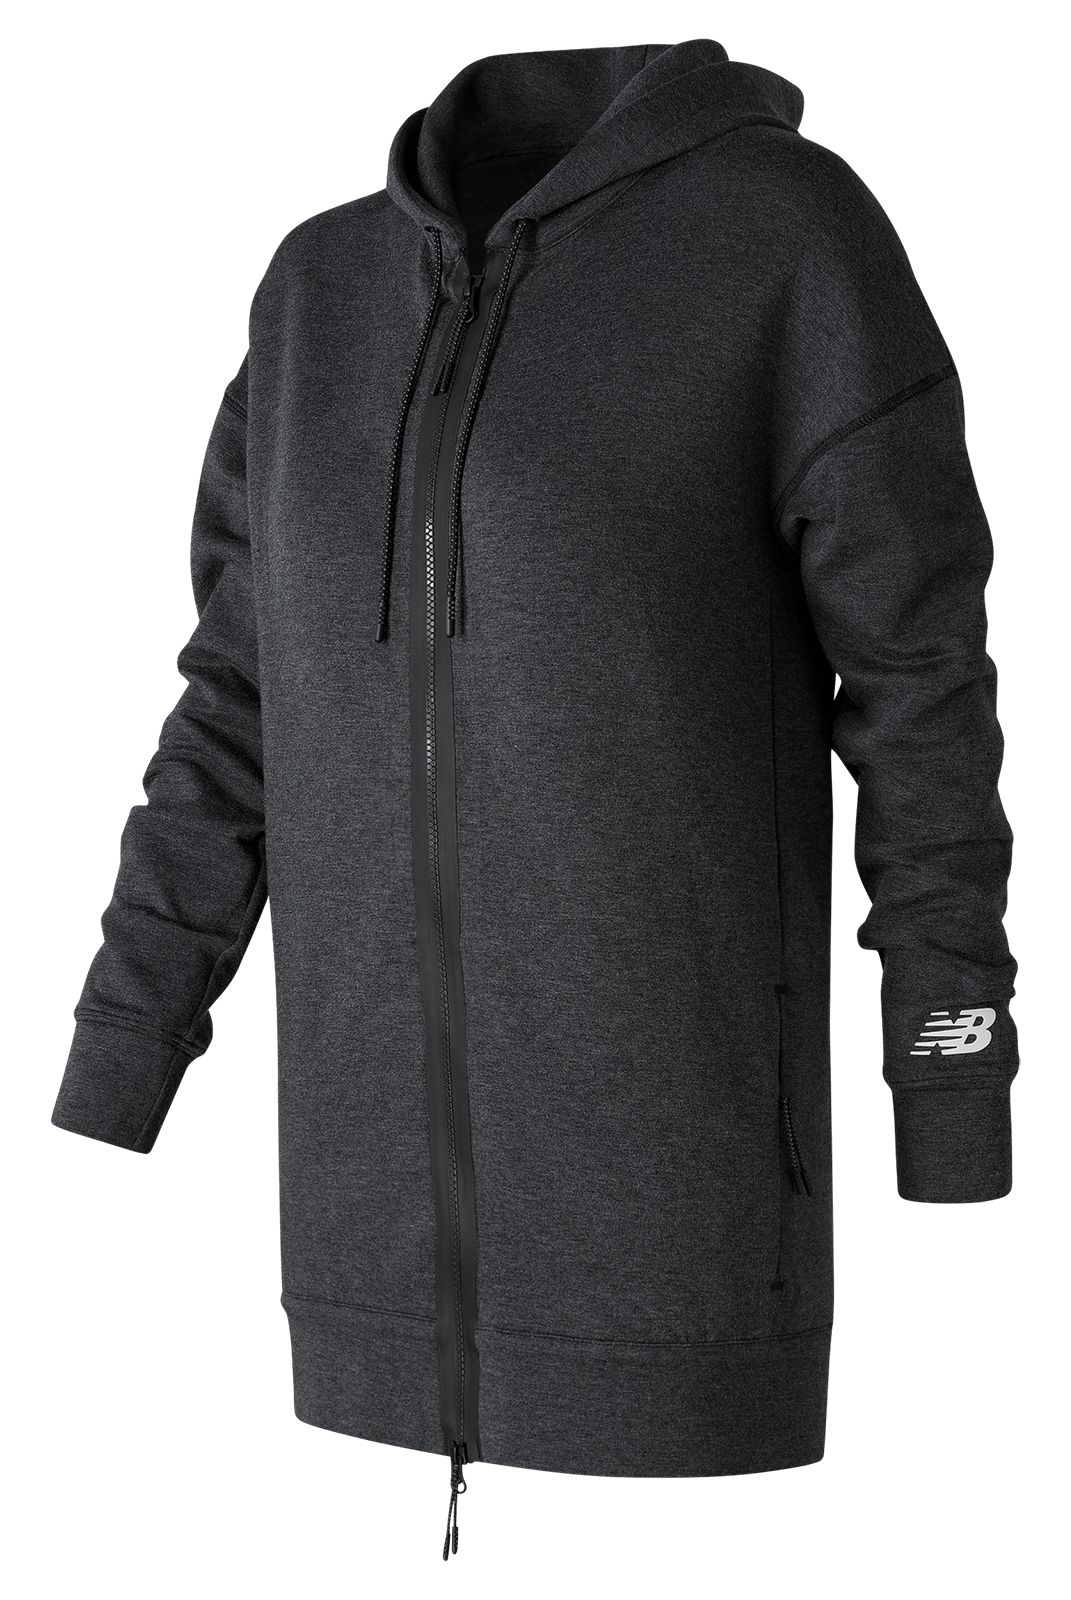 New Balance : Sport Style Fleece Hoodie : Women's Casual : WJ71561BKH